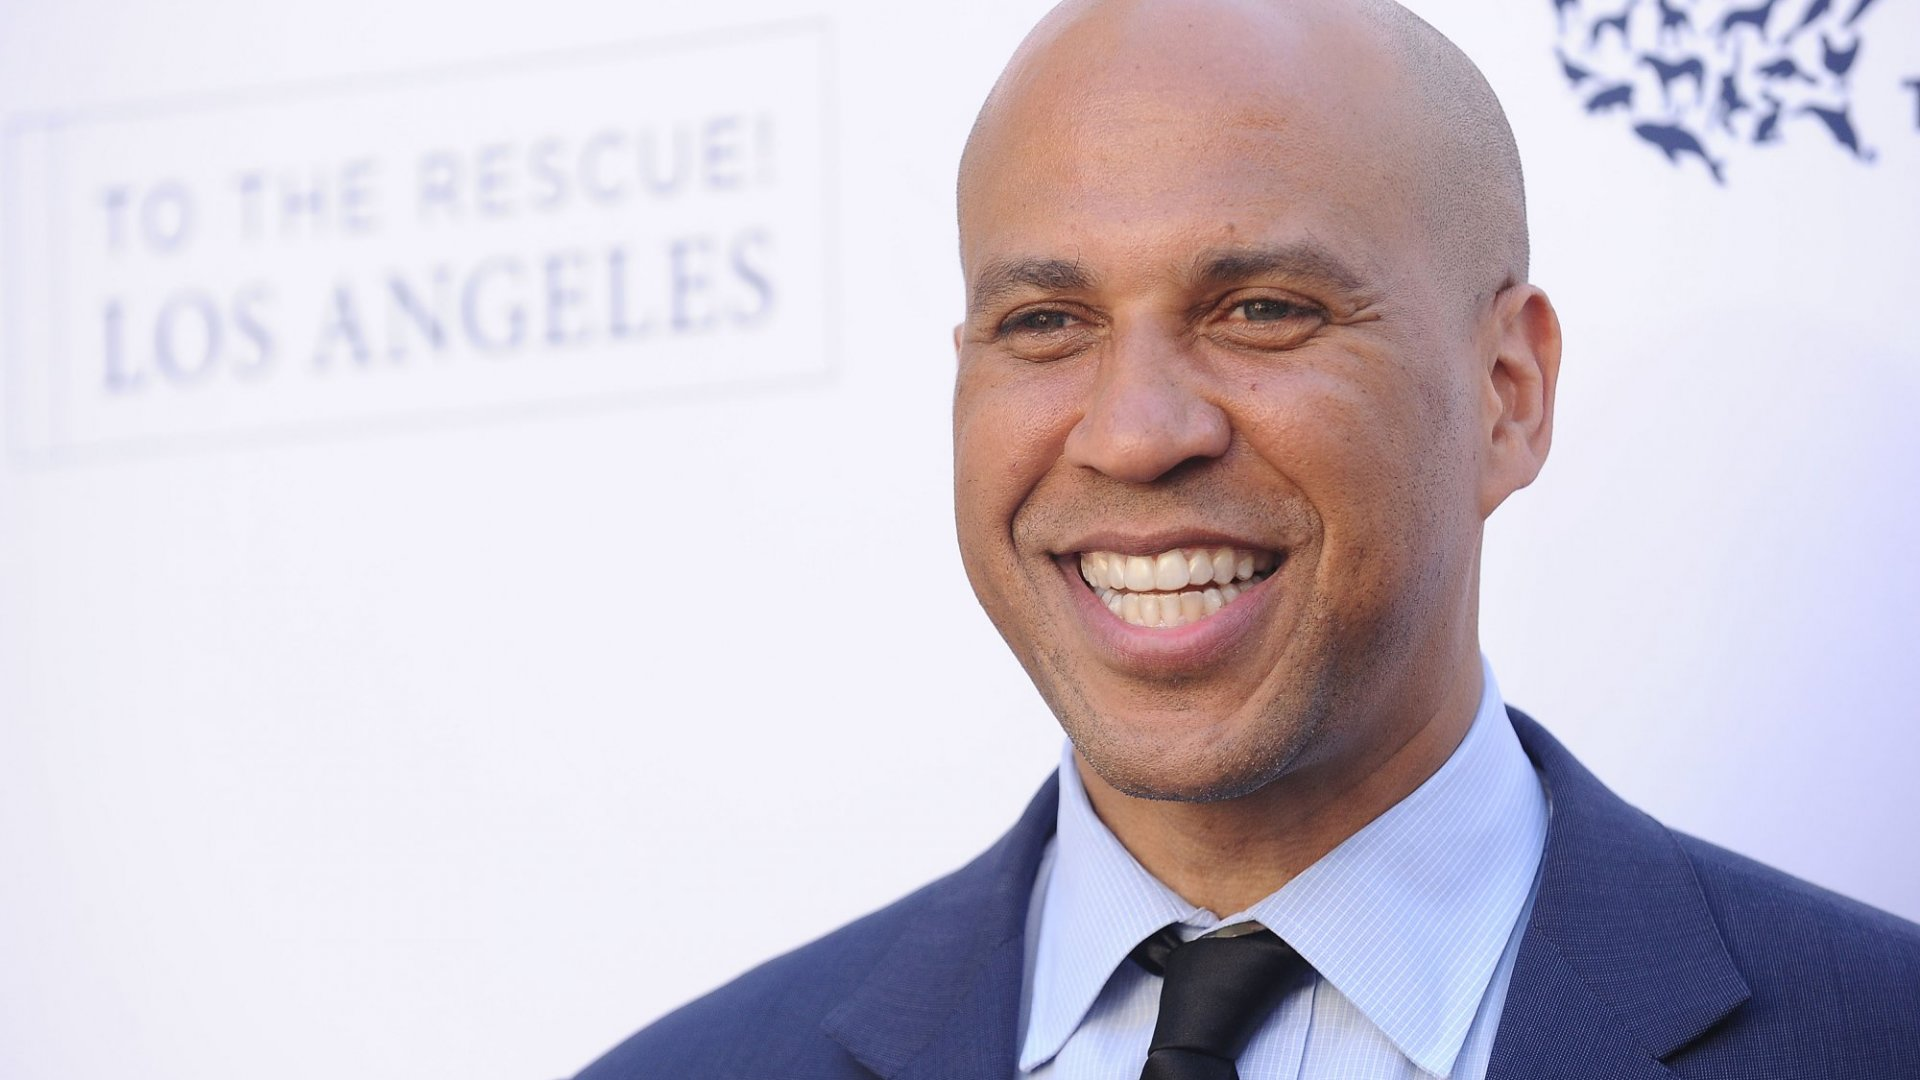 Presidential Hopeful Cory Booker Brings Silicon Valley Ties to the 2020 Race